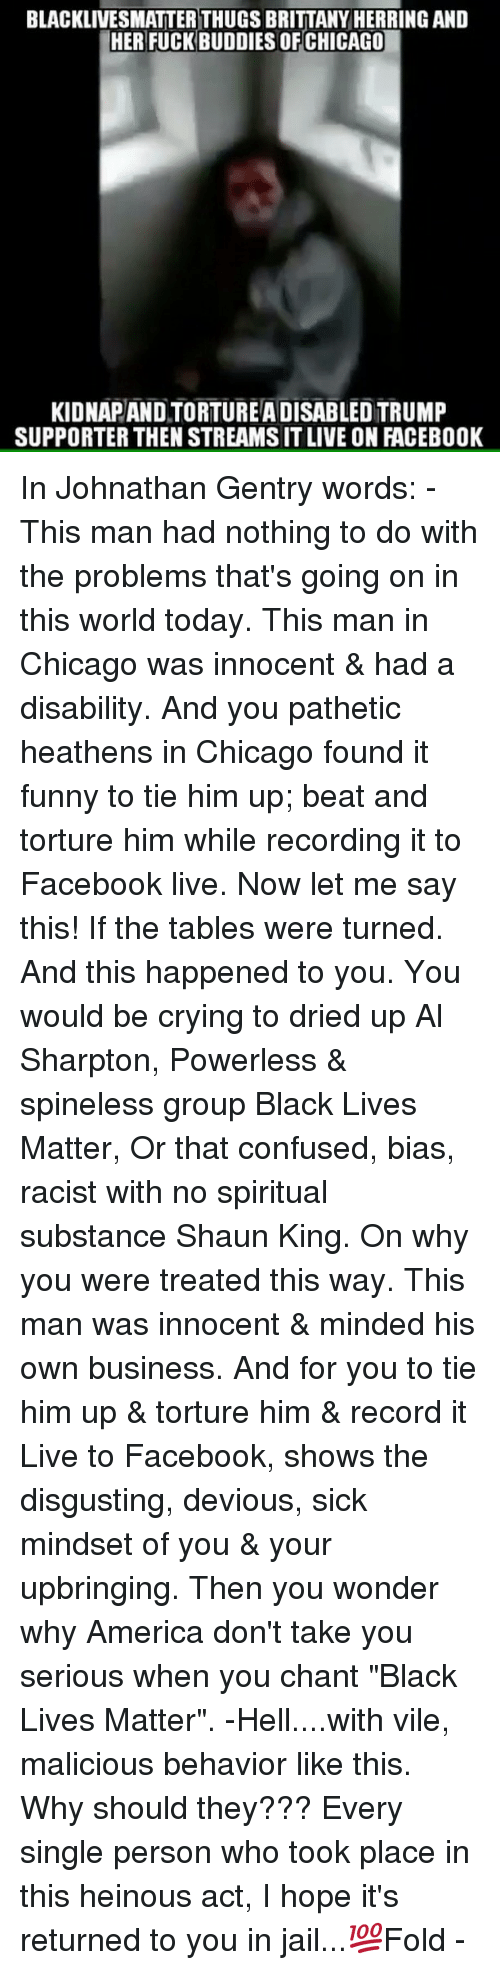 "Patheticness: BLACKLIVESMATTERTHUGS BRITTANY HERRING AND  HER FUCK BUDDIES OF CHICAGO  KIDNAPANDTORTUREADISABLED TRUMP  SUPPORTER THEN STREAMSITLIVE ON FACEBOOK In Johnathan Gentry words: - This man had nothing to do with the problems that's going on in this world today. This man in Chicago was innocent & had a disability. And you pathetic heathens in Chicago found it funny to tie him up; beat and torture him while recording it to Facebook live. Now let me say this! If the tables were turned. And this happened to you. You would be crying to dried up Al Sharpton, Powerless & spineless group Black Lives Matter, Or that confused, bias, racist with no spiritual substance Shaun King. On why you were treated this way. This man was innocent & minded his own business. And for you to tie him up & torture him & record it Live to Facebook, shows the disgusting, devious, sick mindset of you & your upbringing. Then you wonder why America don't take you serious when you chant ""Black Lives Matter"". -Hell....with vile, malicious behavior like this. Why should they??? Every single person who took place in this heinous act, I hope it's returned to you in jail...💯Fold -"